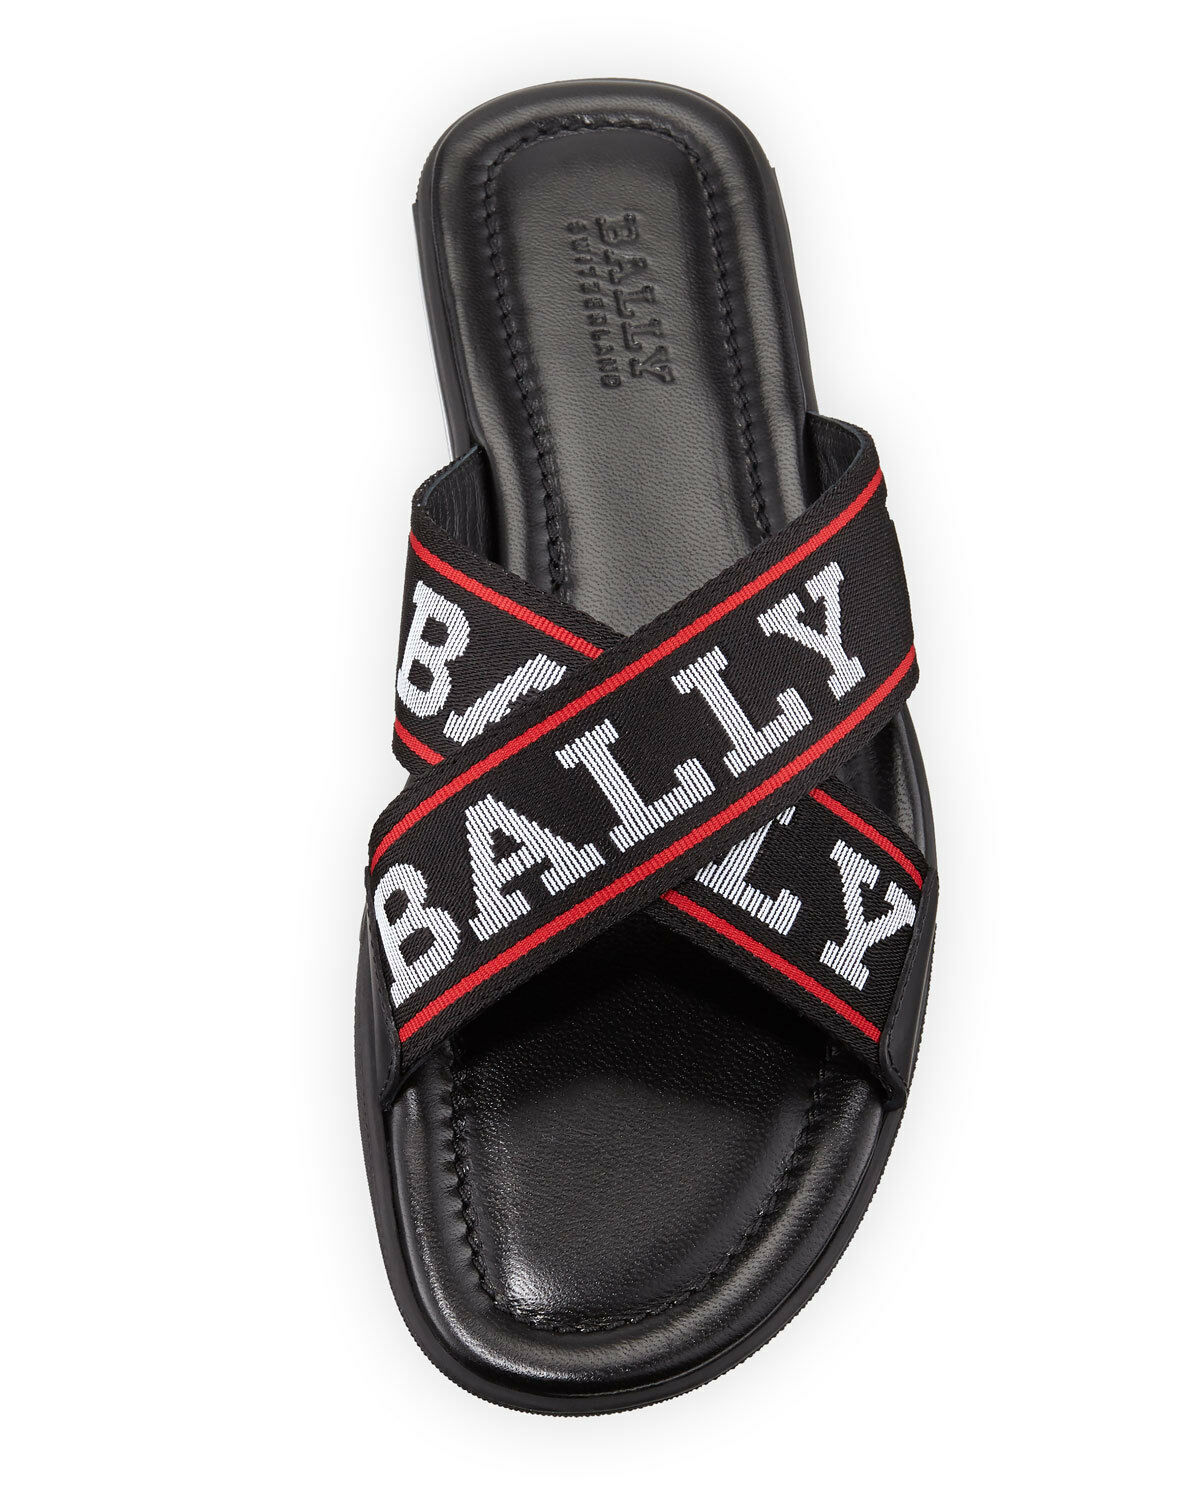 85d8d1ceeda9 Bally Bonks Black Leather Striped Logo Crisscross Sandal Slides 8 US 41  Italy for sale online